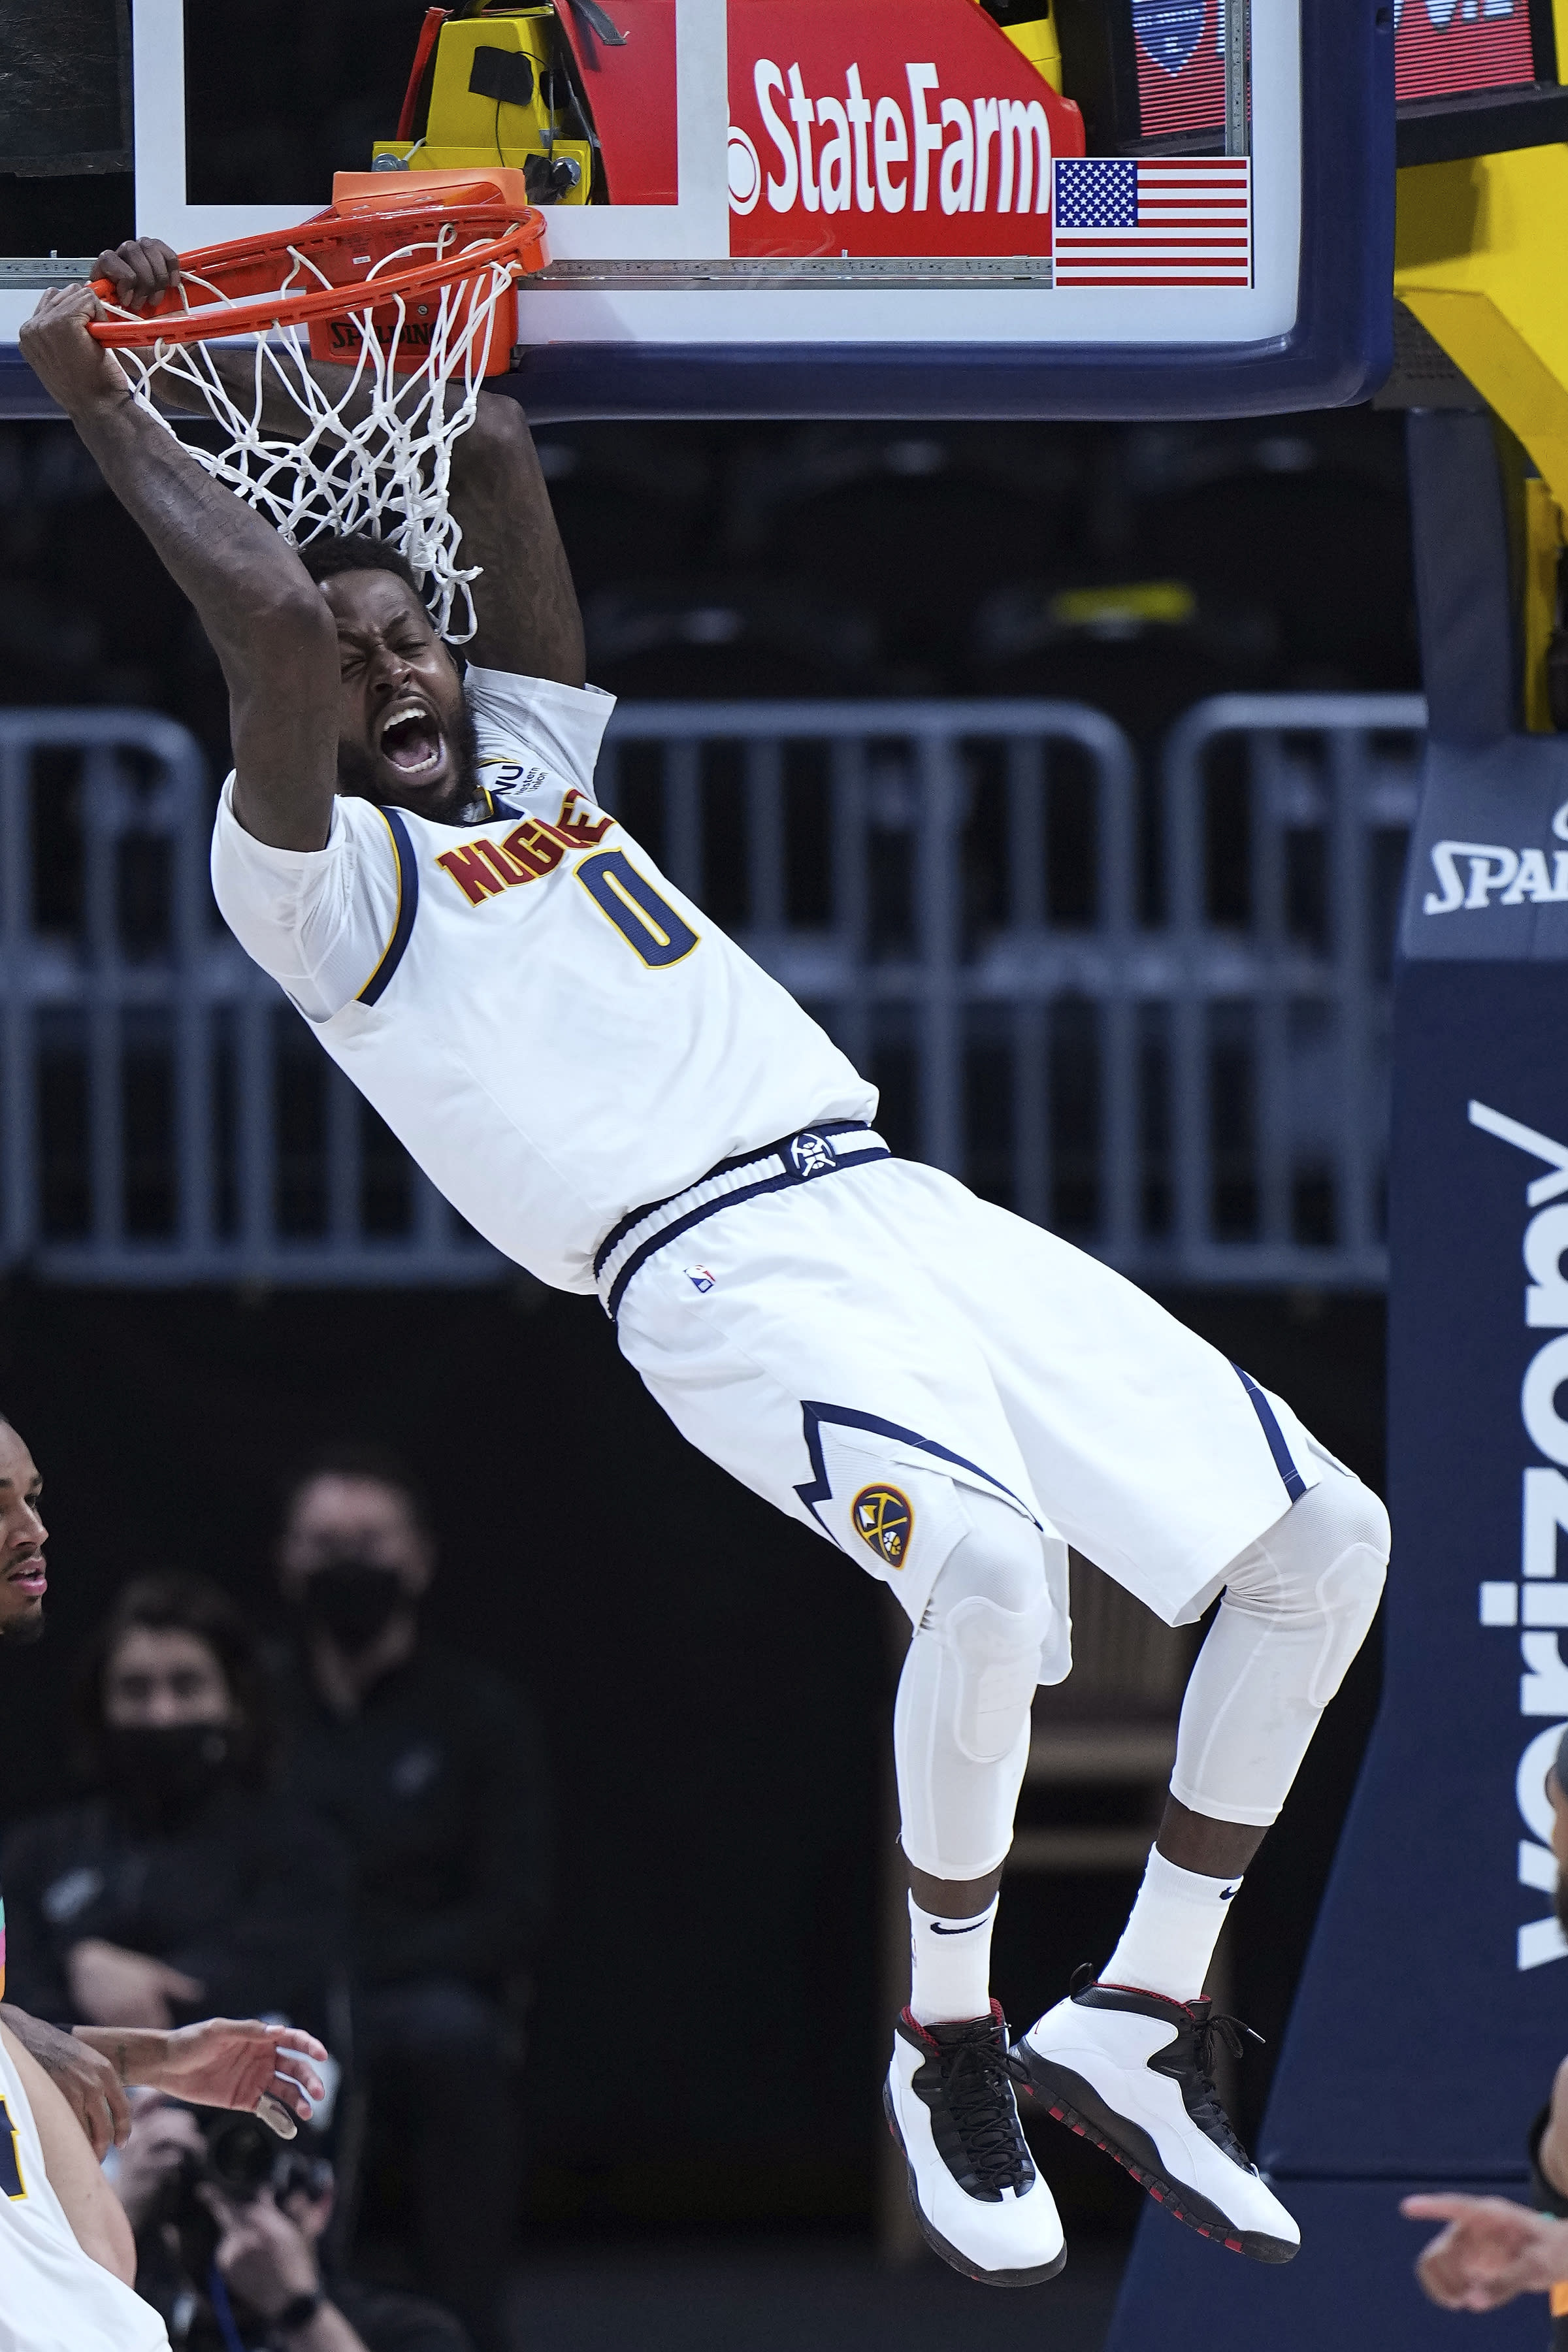 Denver Nuggets forward JaMychal Green reacts after a dunk against the San Antonio Spurs during the first quarter of an NBA basketball game Wednesday, April 7, 2021, in Denver. (AP Photo/Jack Dempsey)